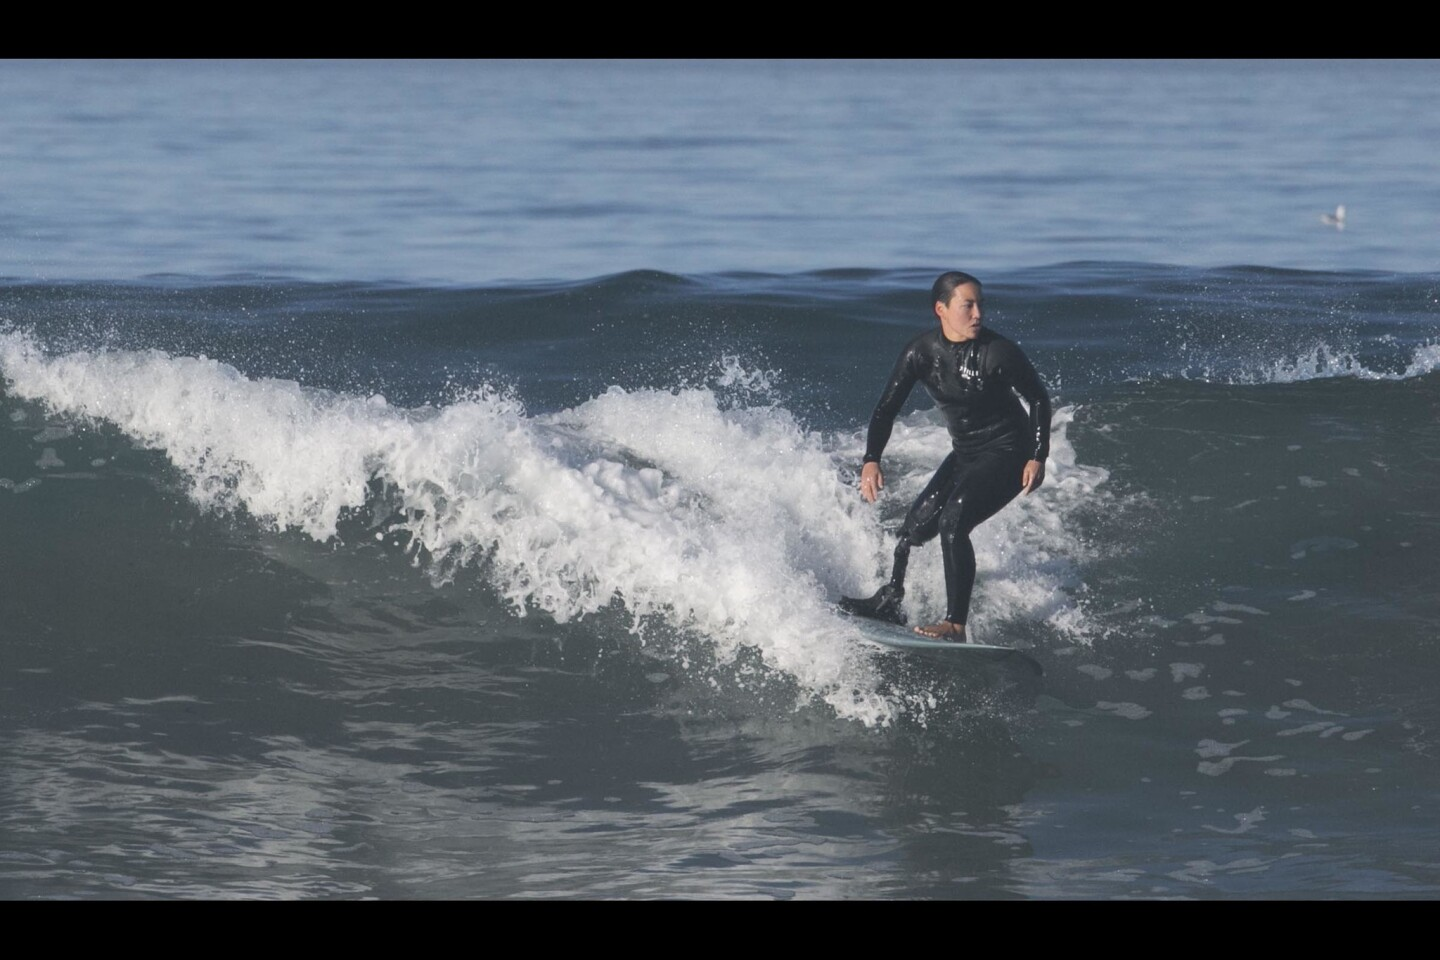 Dani caught a wave at the beach in Encinitas.